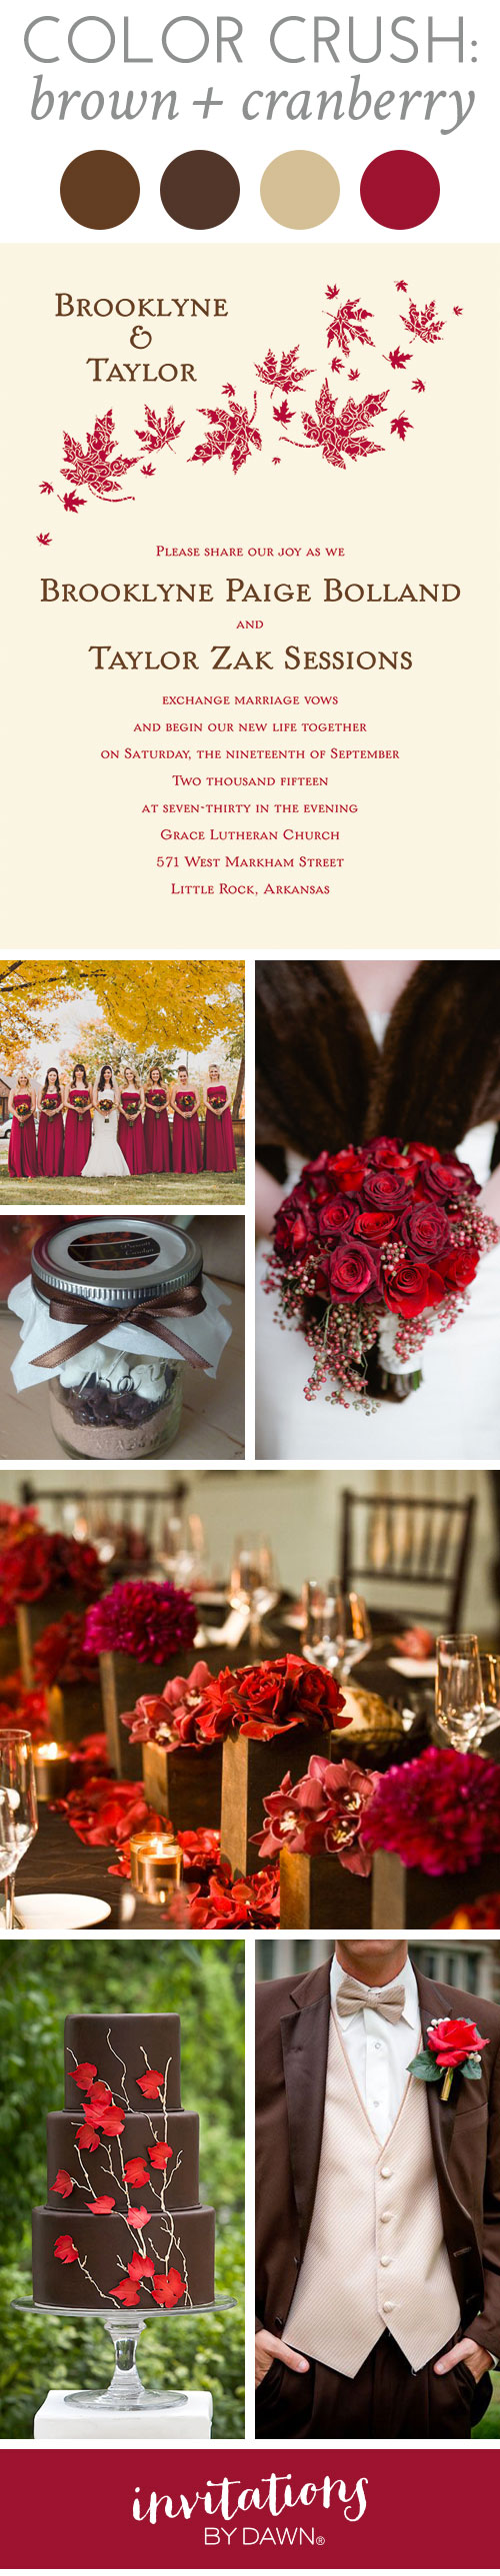 Color Crush: Brown and Cranberry | Crushes, Brown and Weddings